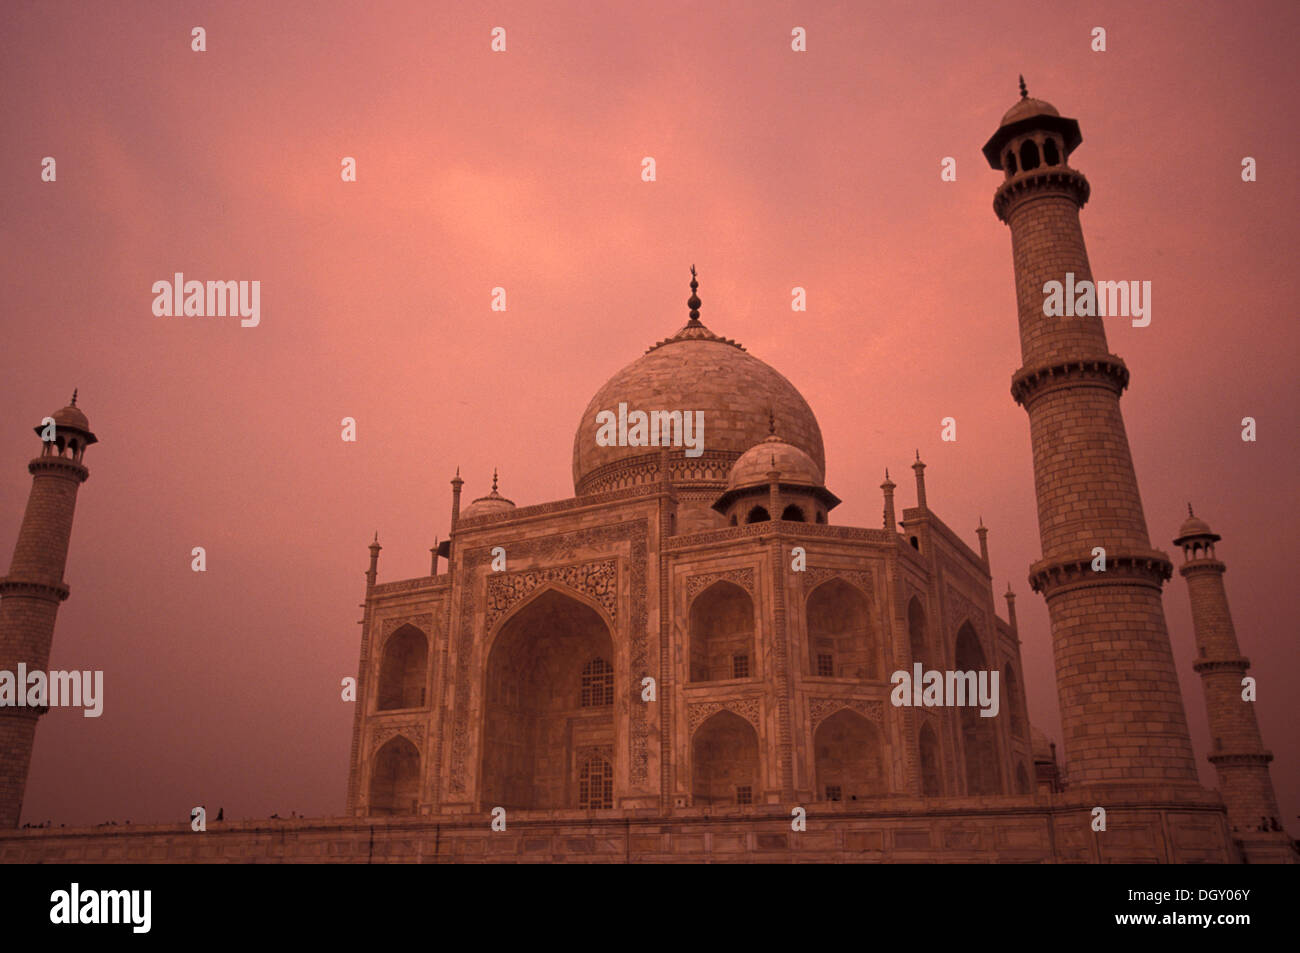 the-world-wonder-taj-mahal-the-taj-a-whi